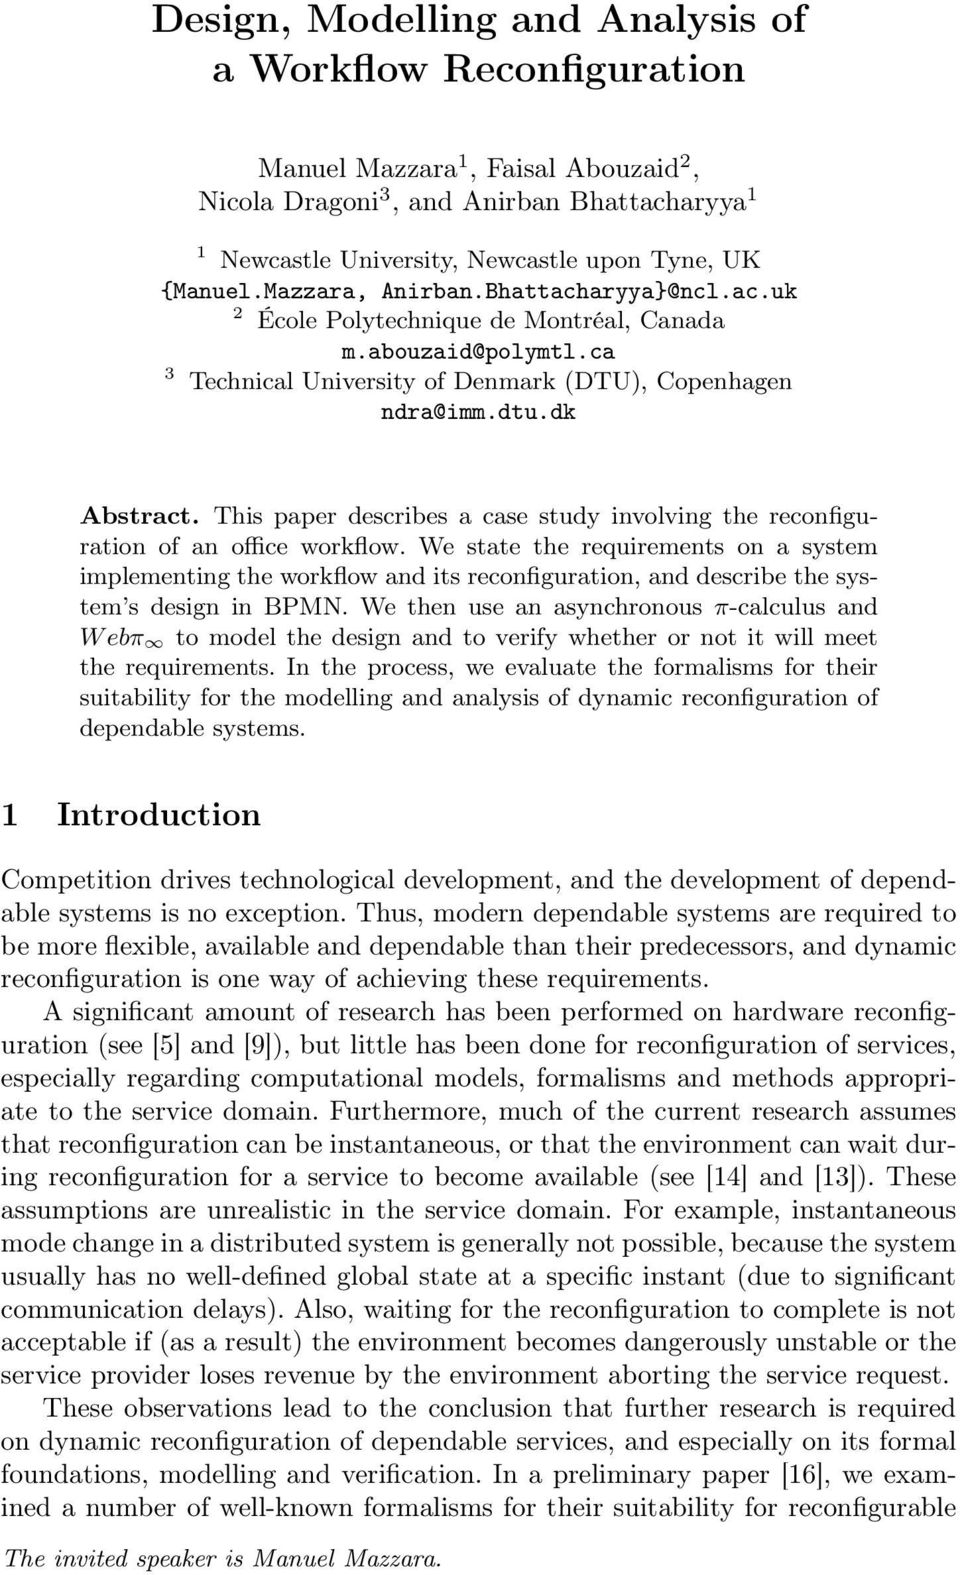 This paper describes a case study involving the reconfiguration of an office workflow.